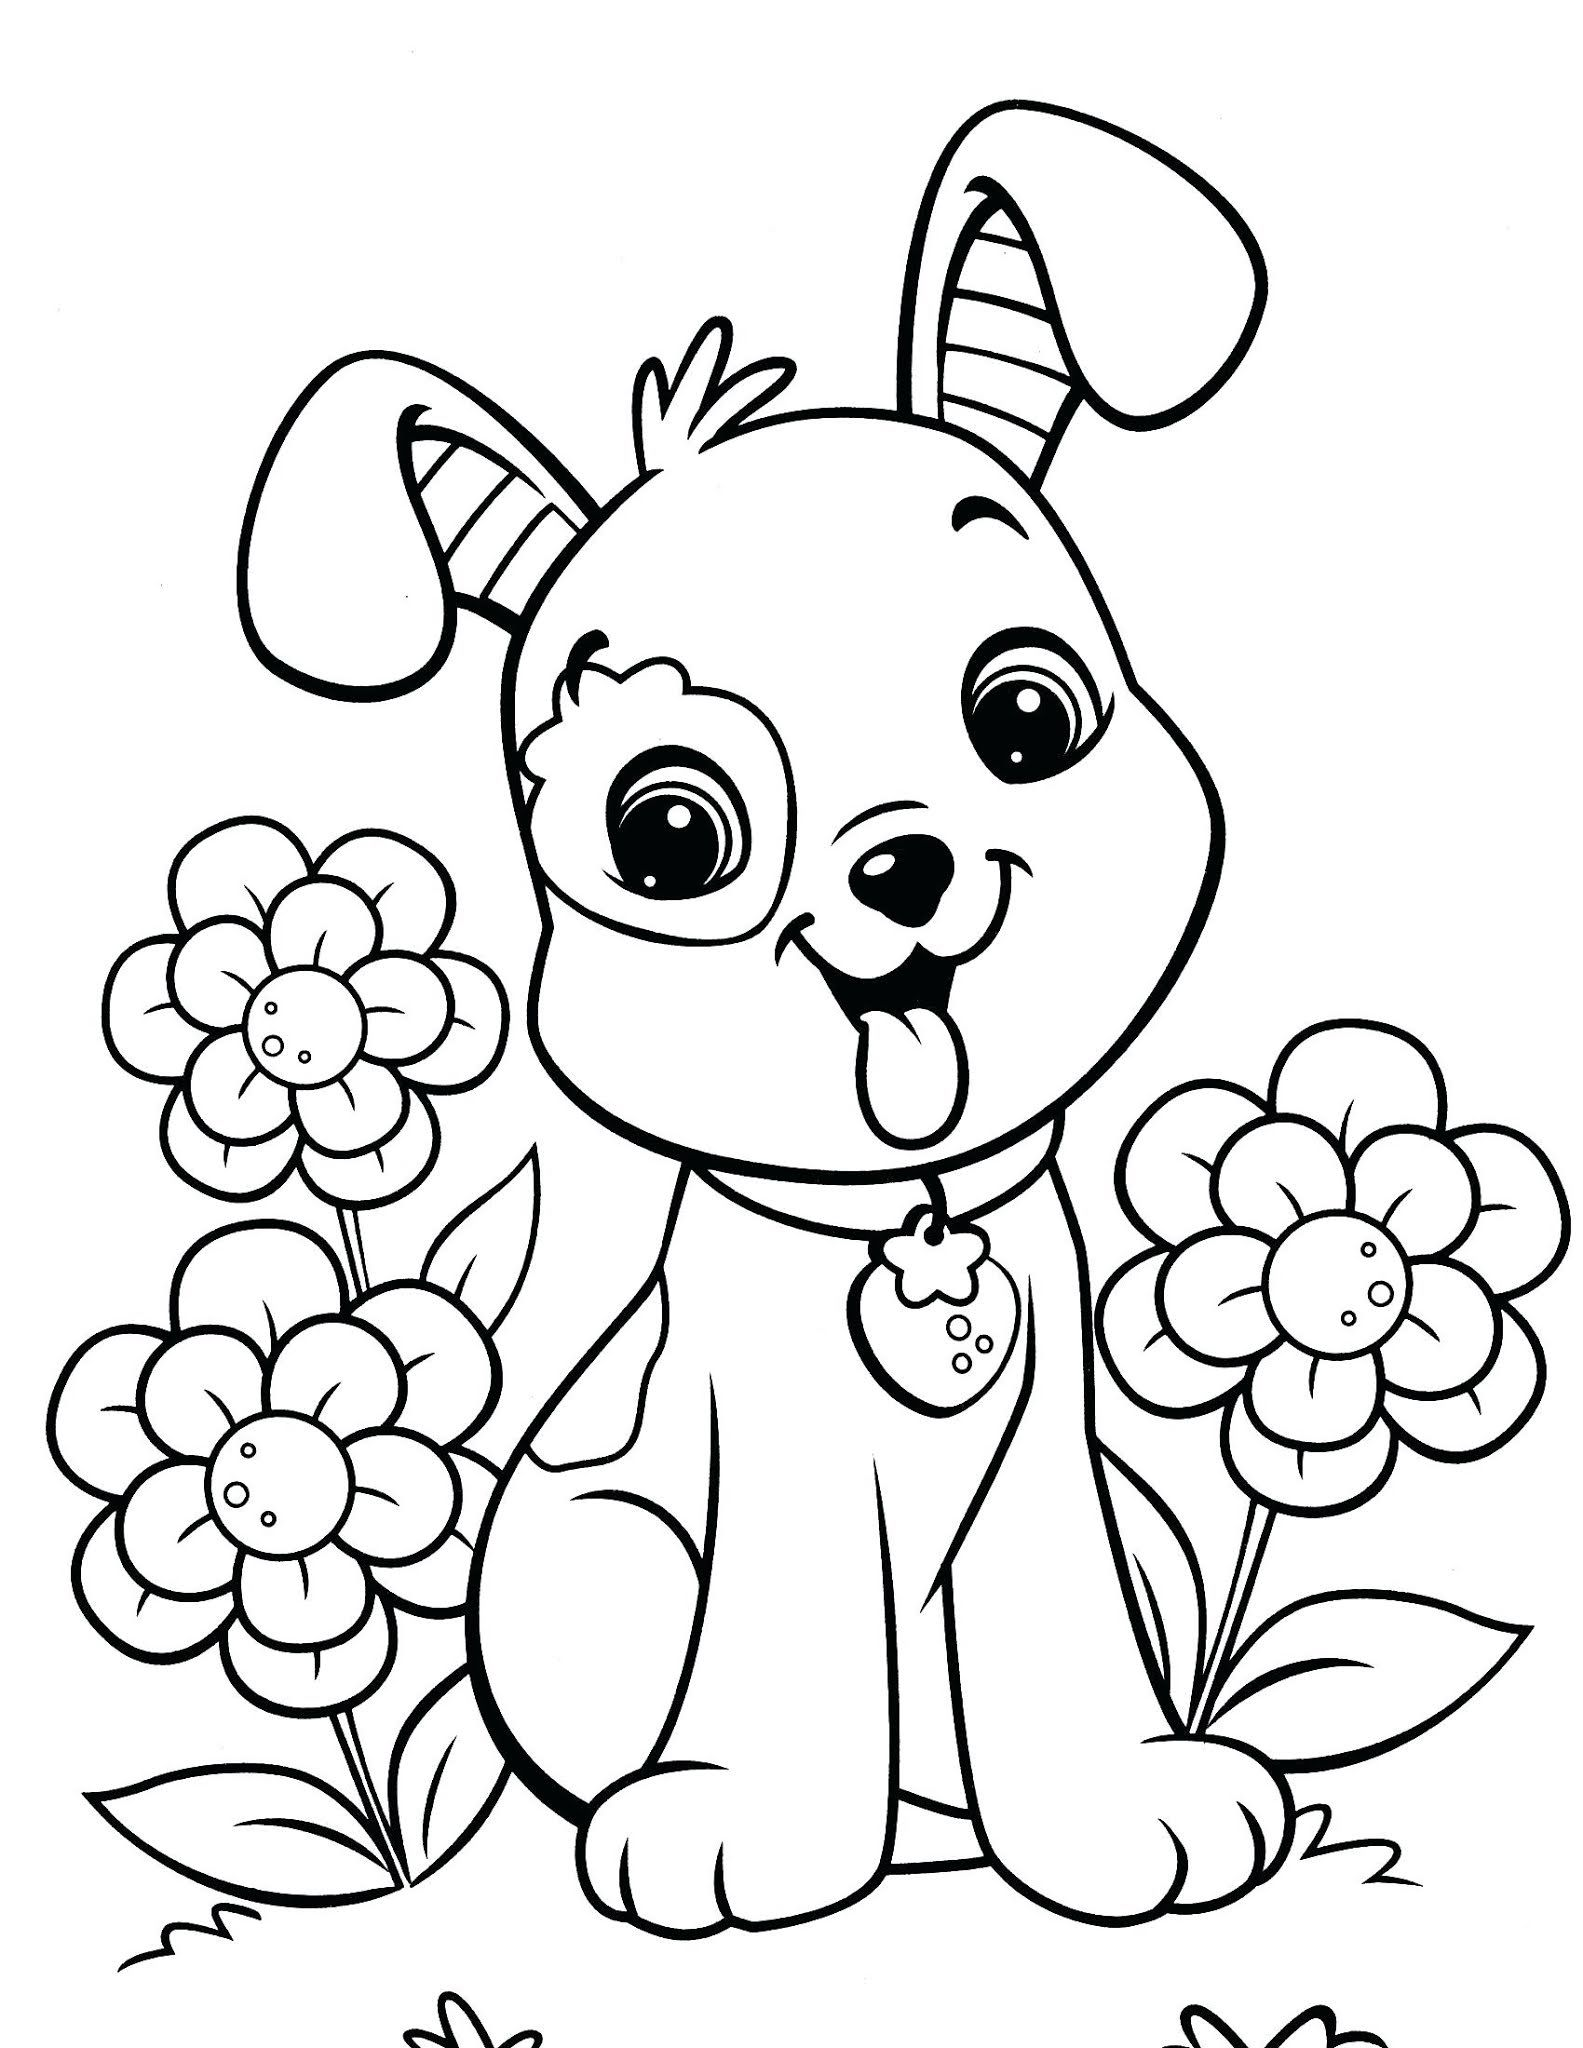 Free Preschool Coloring Sheets Tag Staggering Printable Top Cool Book For Toddlers Preschool Co In 2020 Puppy Coloring Pages Dog Coloring Page Valentine Coloring Pages